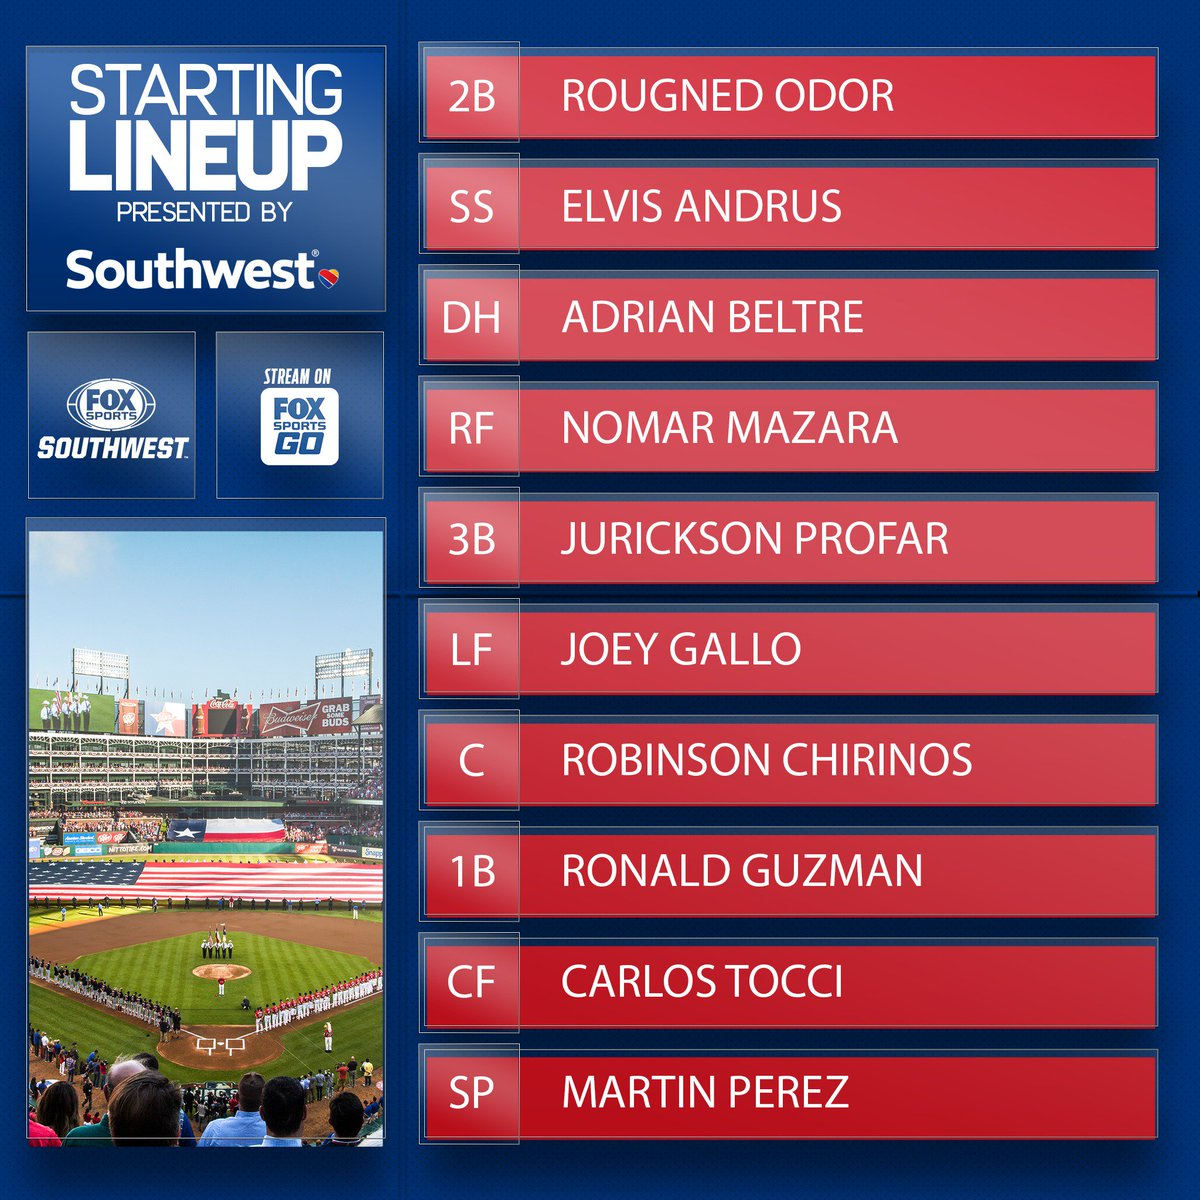 Adrian Beltre is back in the @Rangers lineup brought to you by @SouthwestAir.  #TexasRangers | #SouthwestAirlines